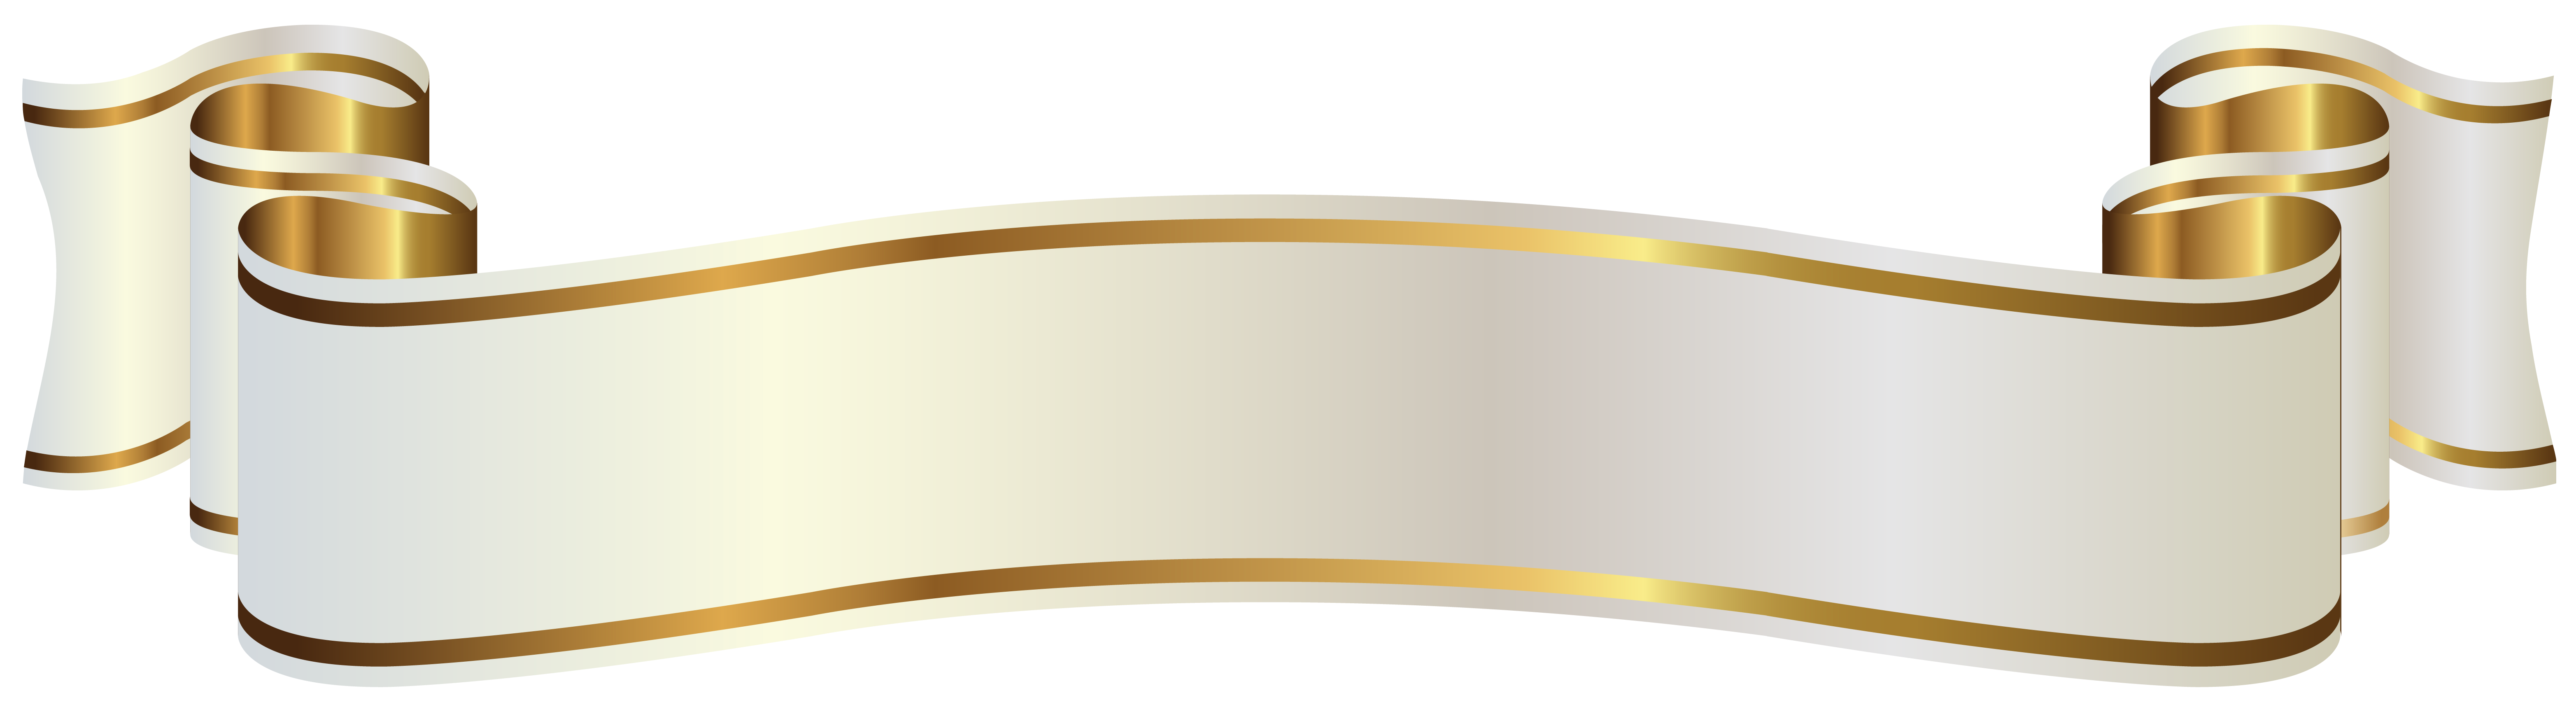 White and Gold Banner PNG Clipart Image Gallery